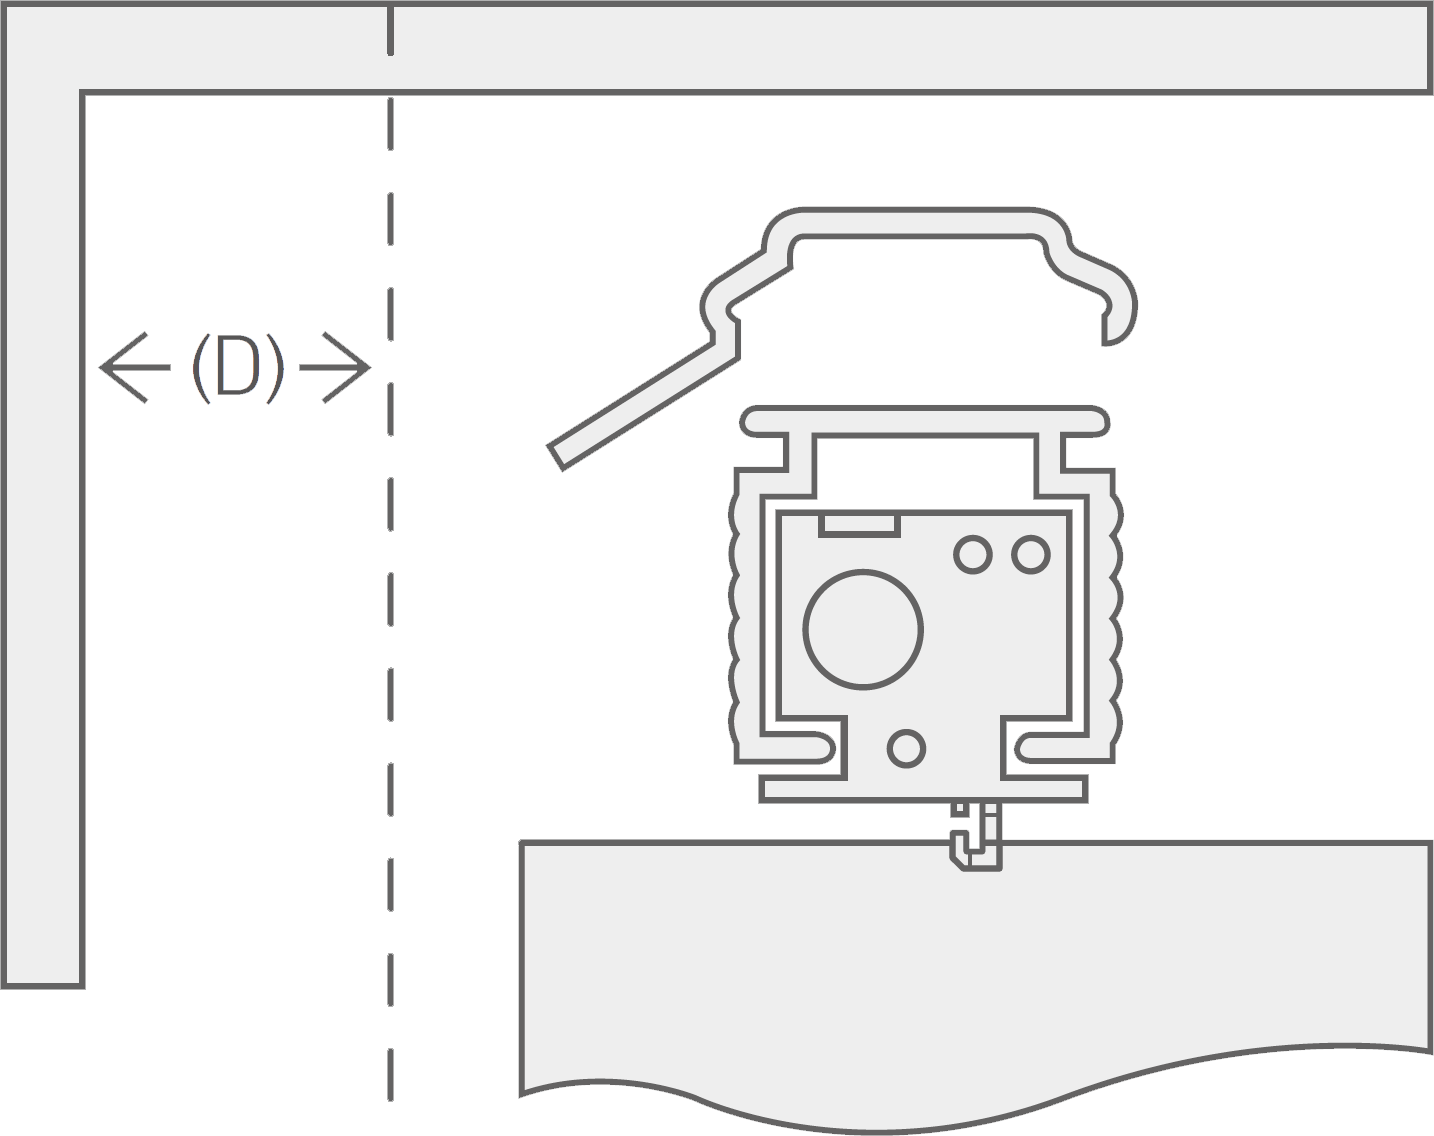 A cross section view of the top of a vertical blind headrail